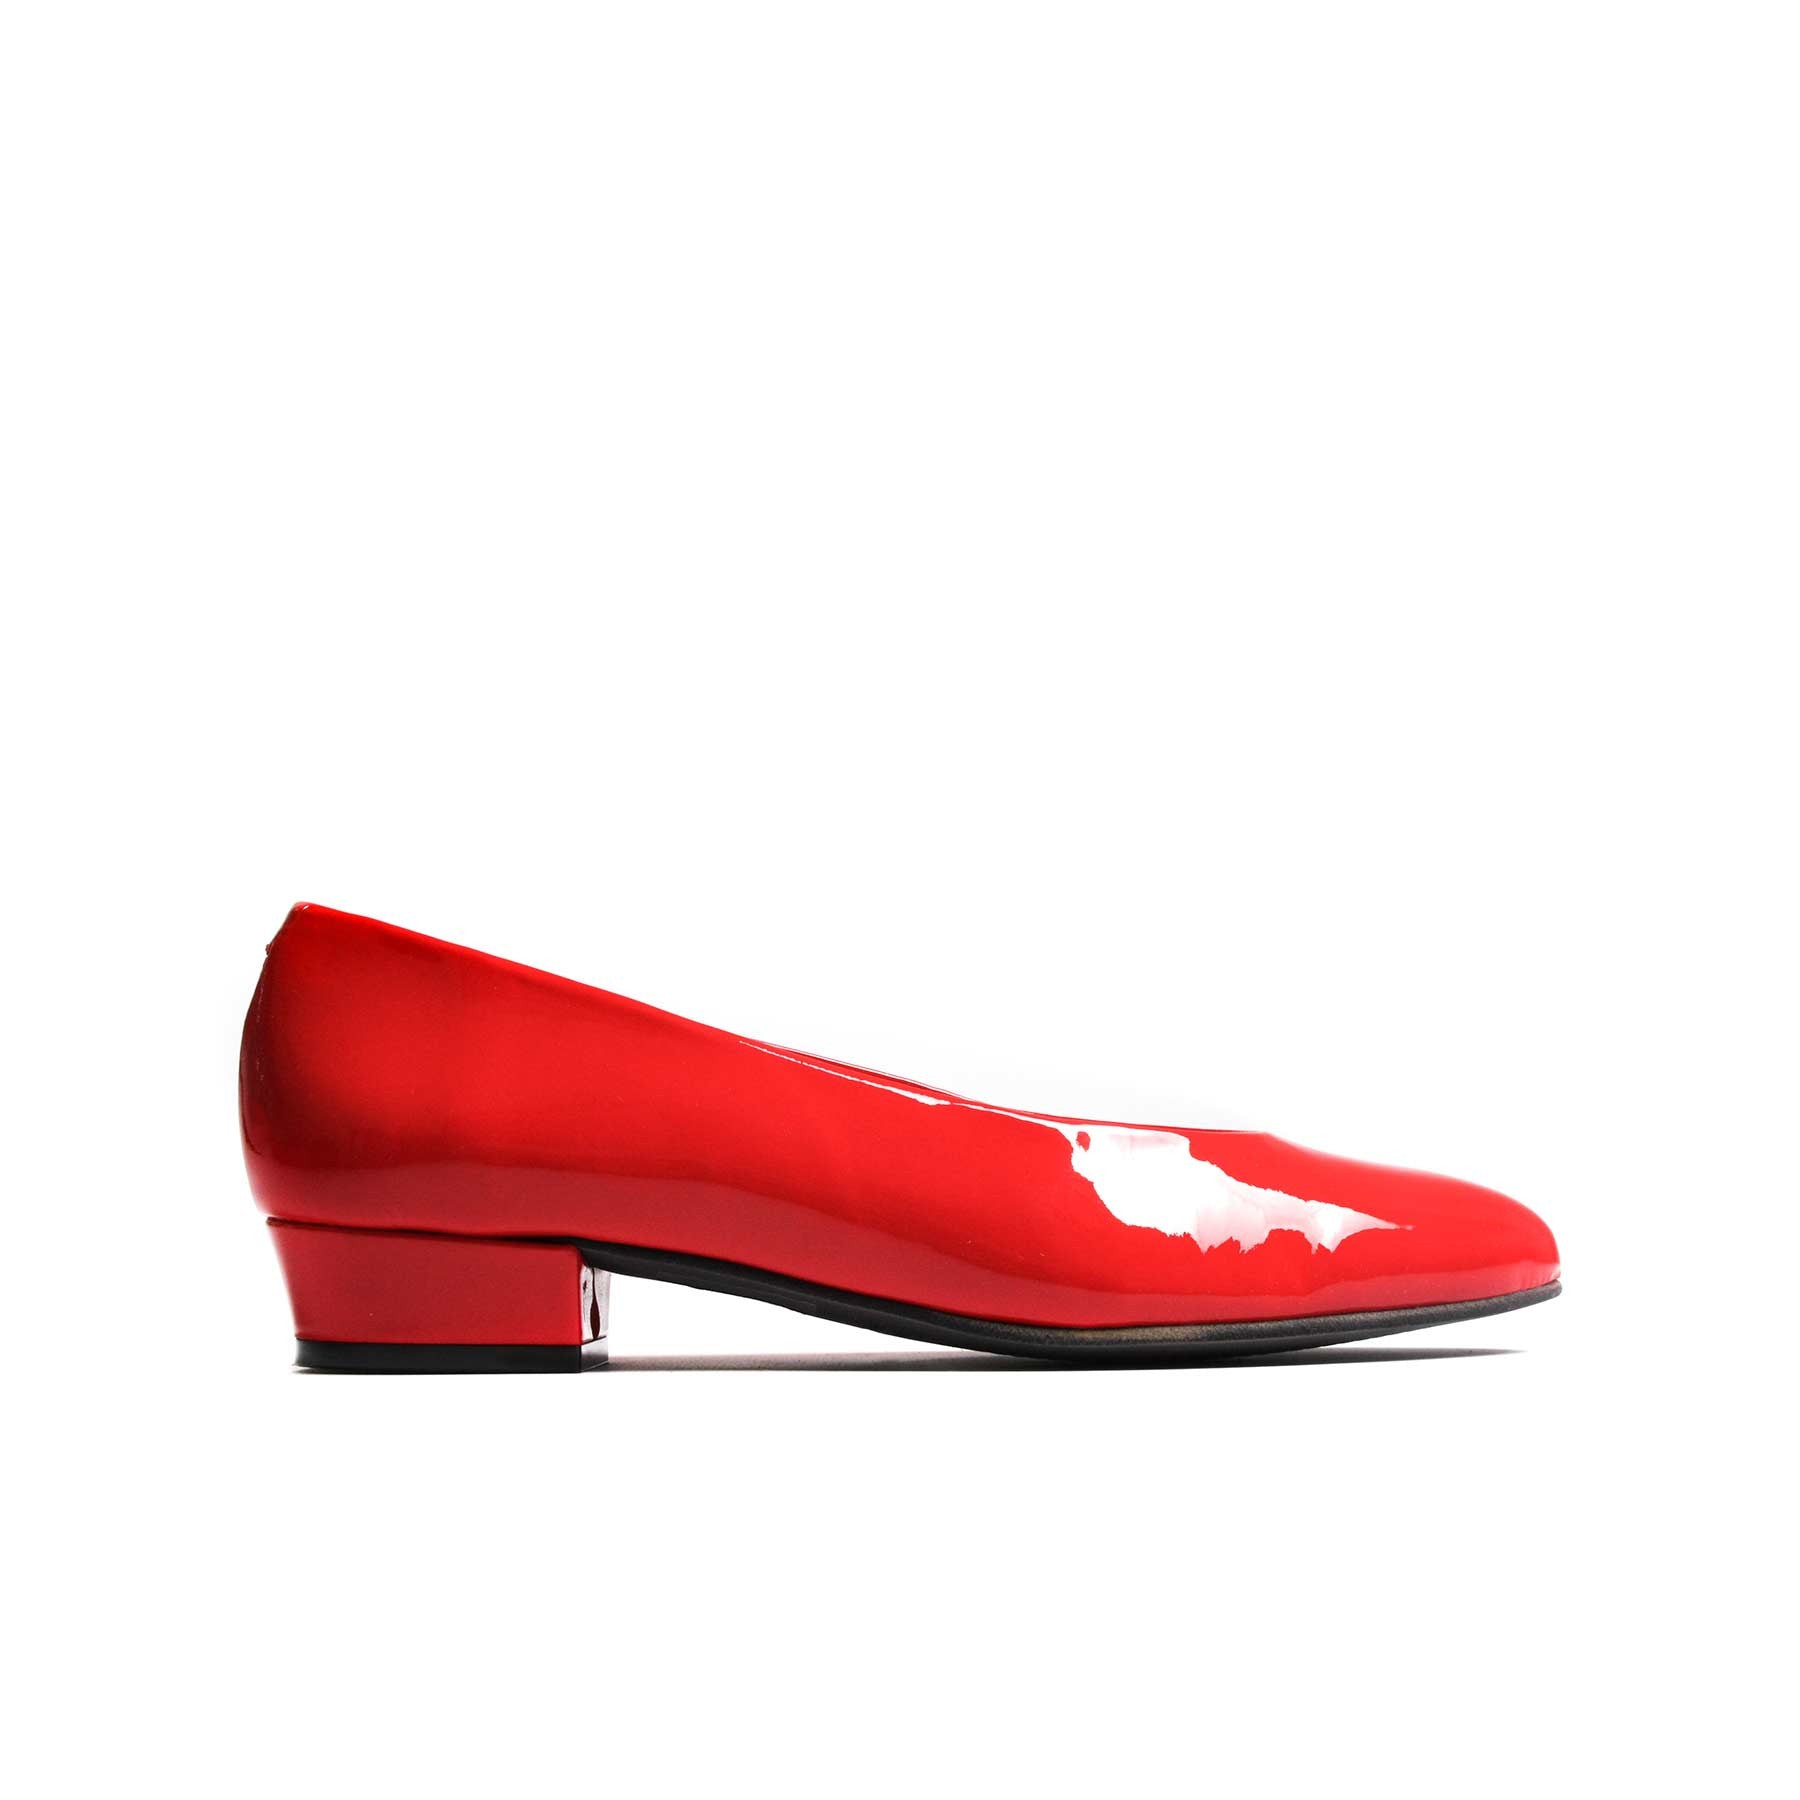 Pumps, Clau Red Patent Leather - Lintervalle shoes for woman